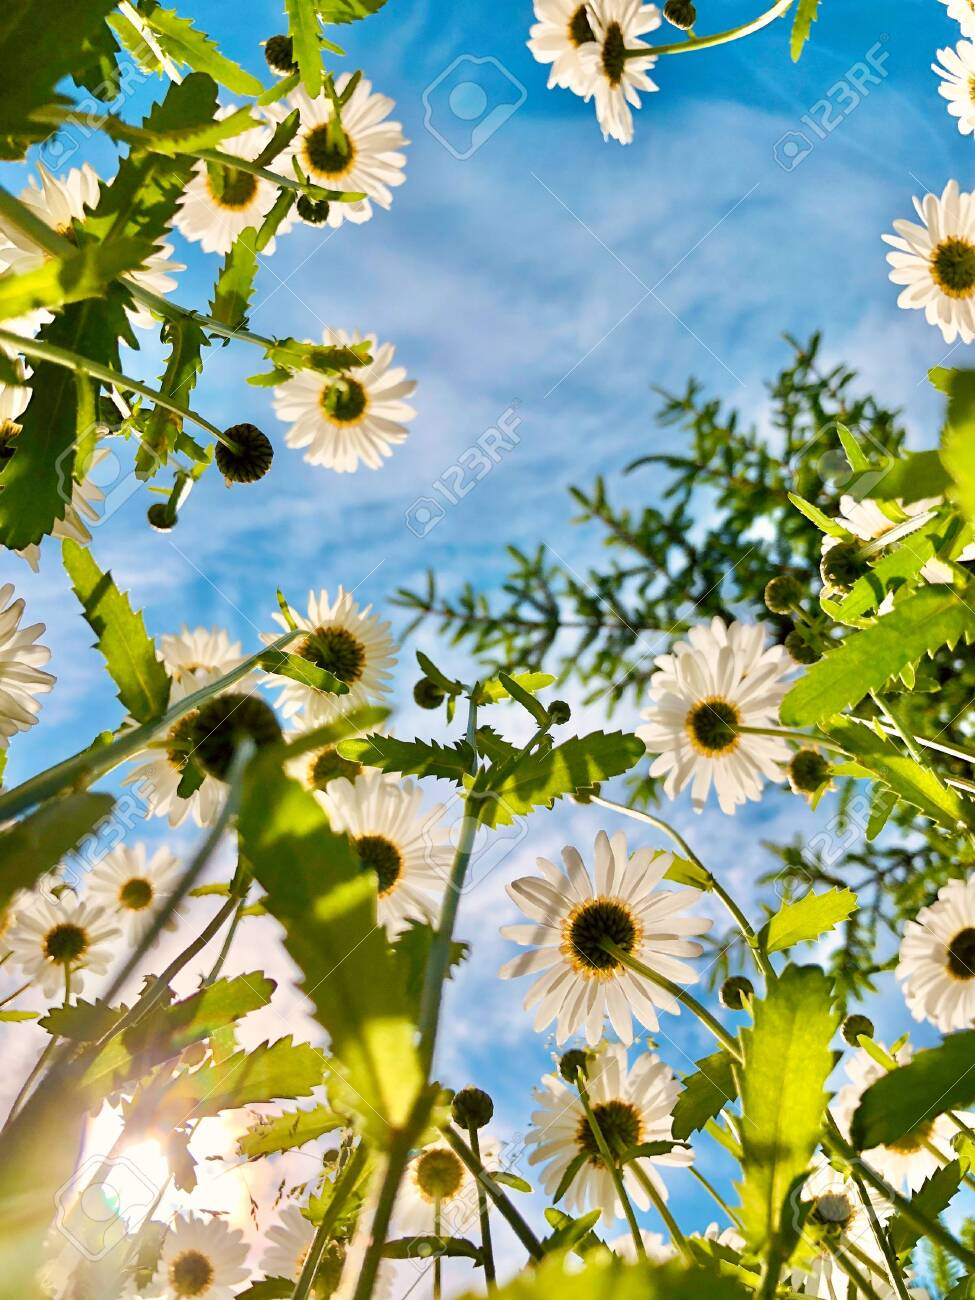 Summer flowers background. Looking up through white daisies into the blue sky in sunlight - 149826298